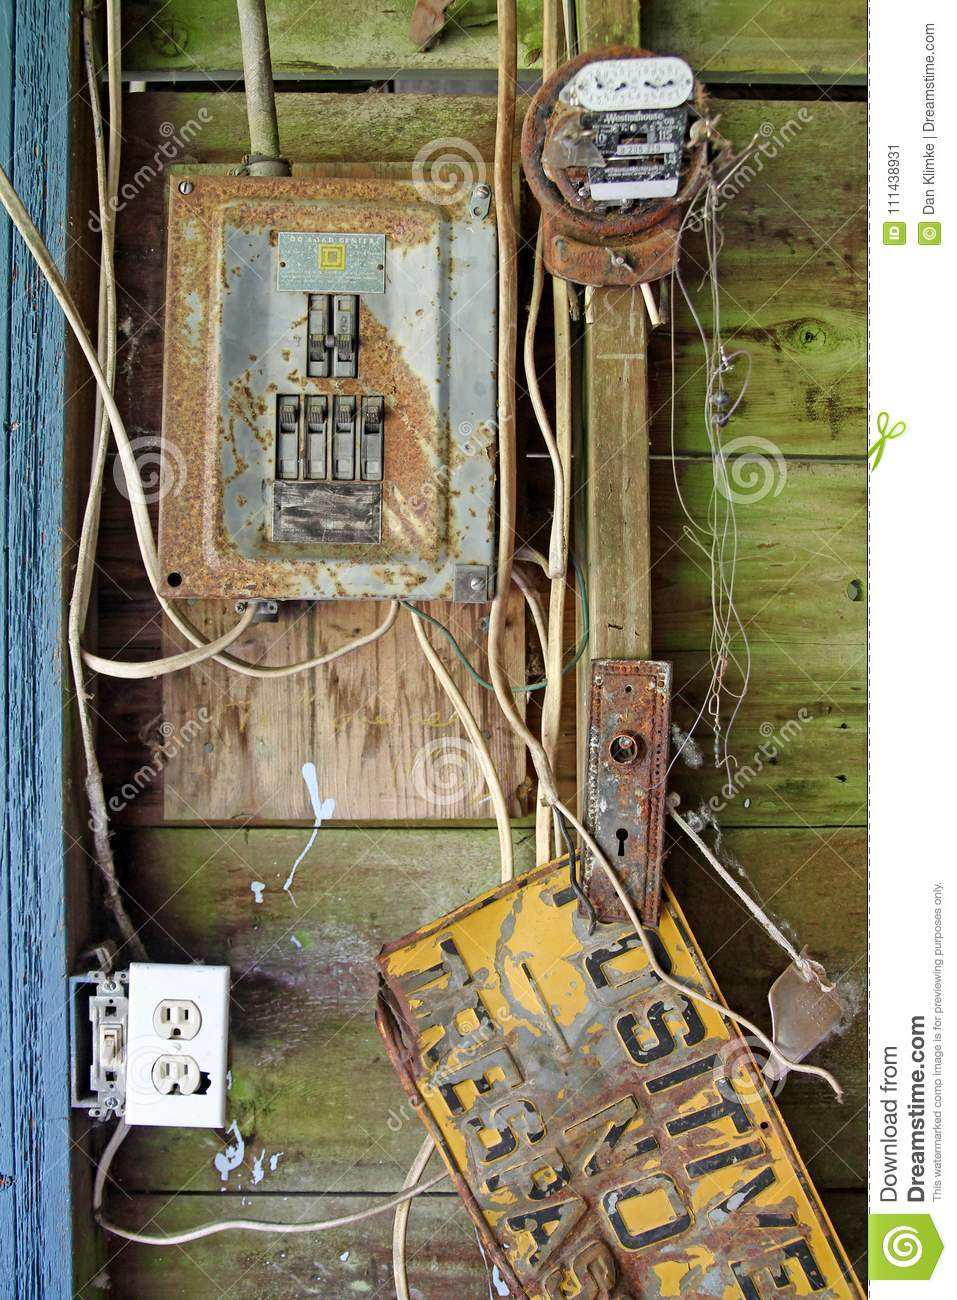 Old House Electrical Panel Wiring Diagrams Home Rusted Editorial Photo Image Of Electric 111438931 2wire A